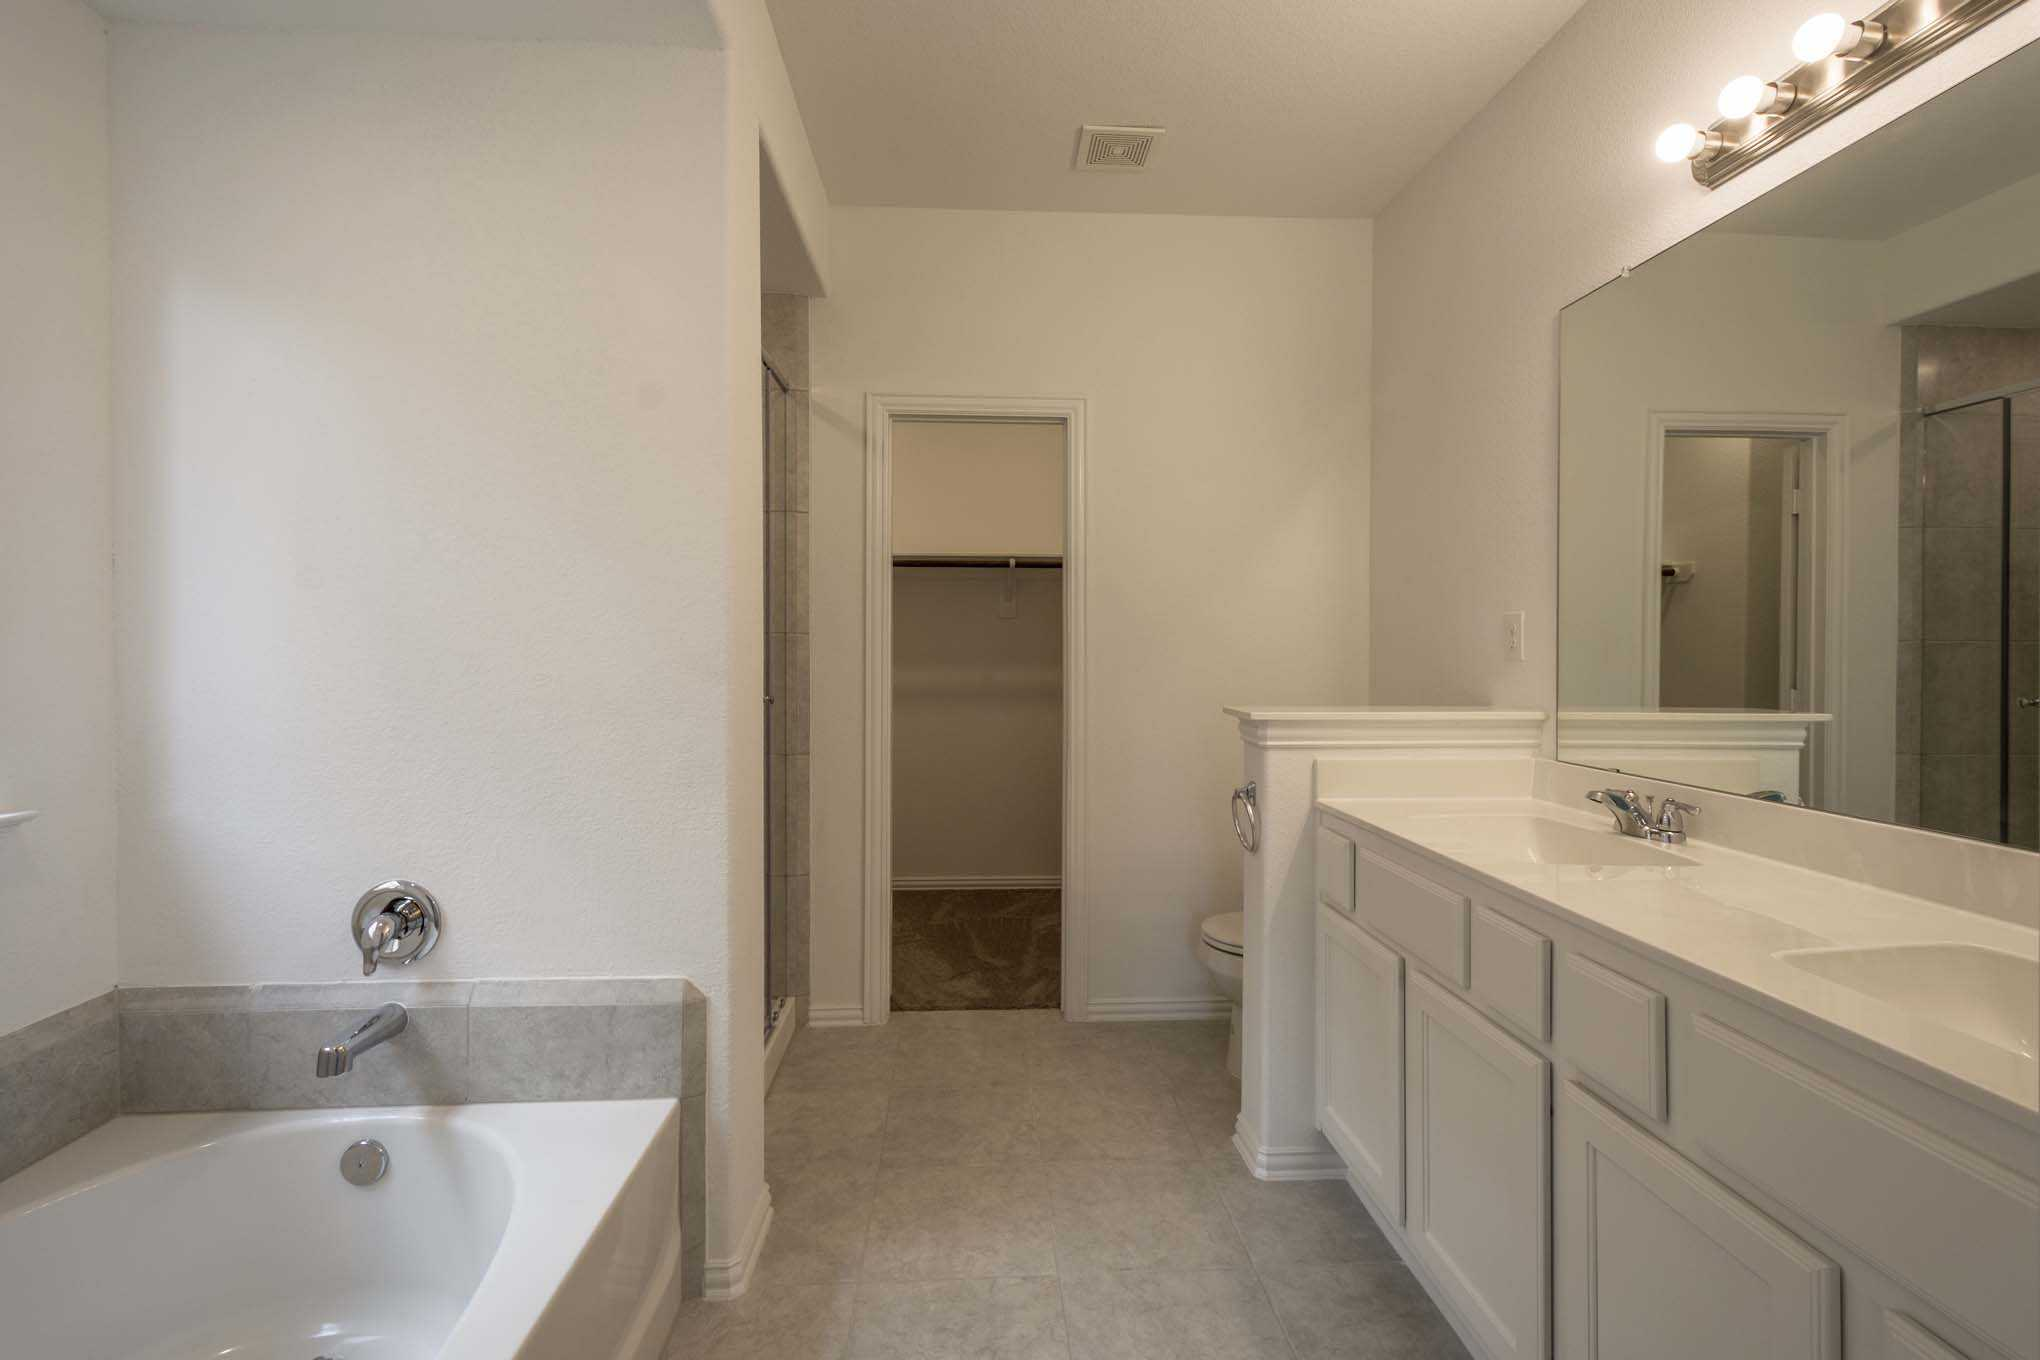 Bathroom featured in the Plan Ascot By Highland Homes in Austin, TX